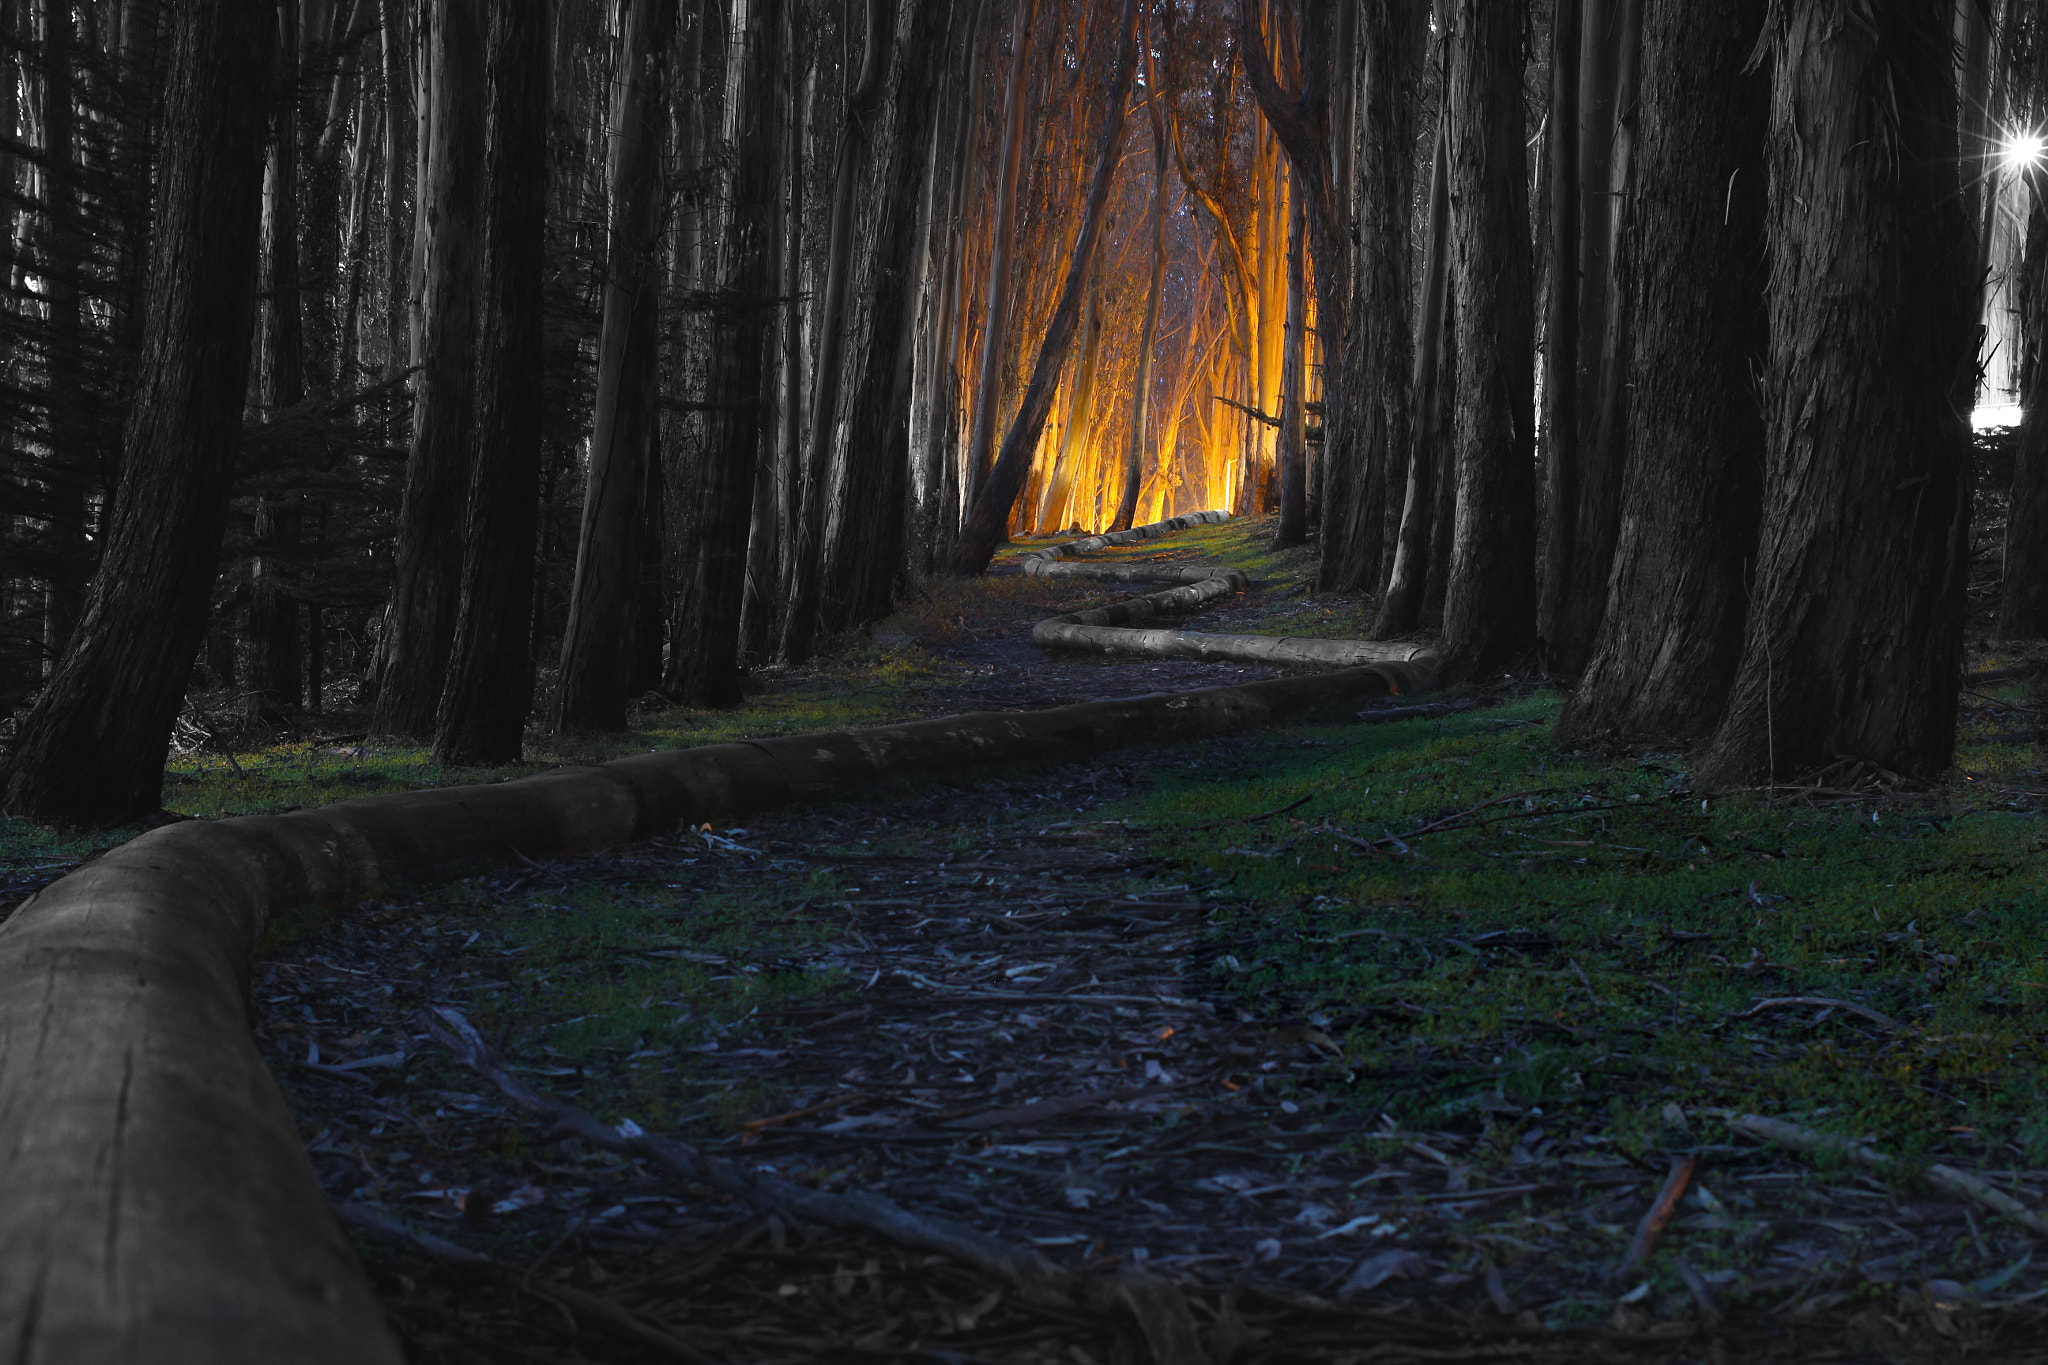 Photograph Haunted Andrew Goldsworthy Forest by Cam Fortin on 500px